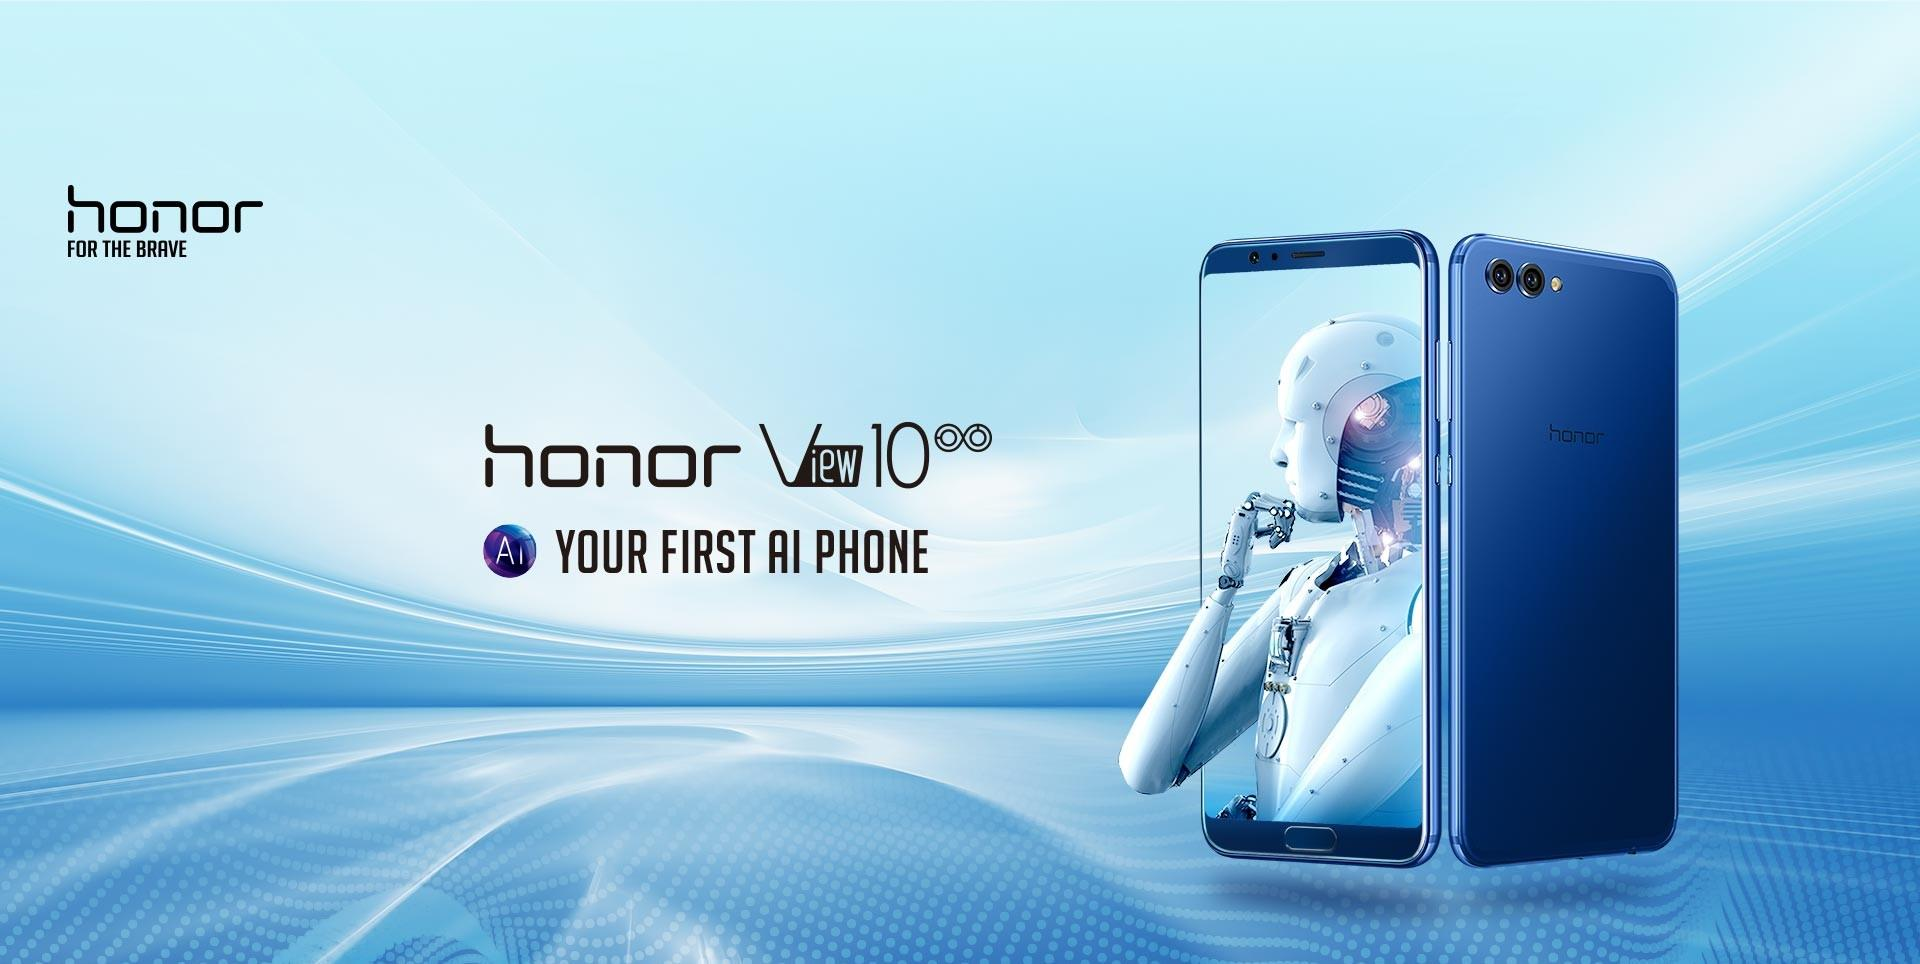 HONOR View 10 | HONOR V10 (ORIGINAL) + FREEBIES WORTH RM888 ONLY @DD